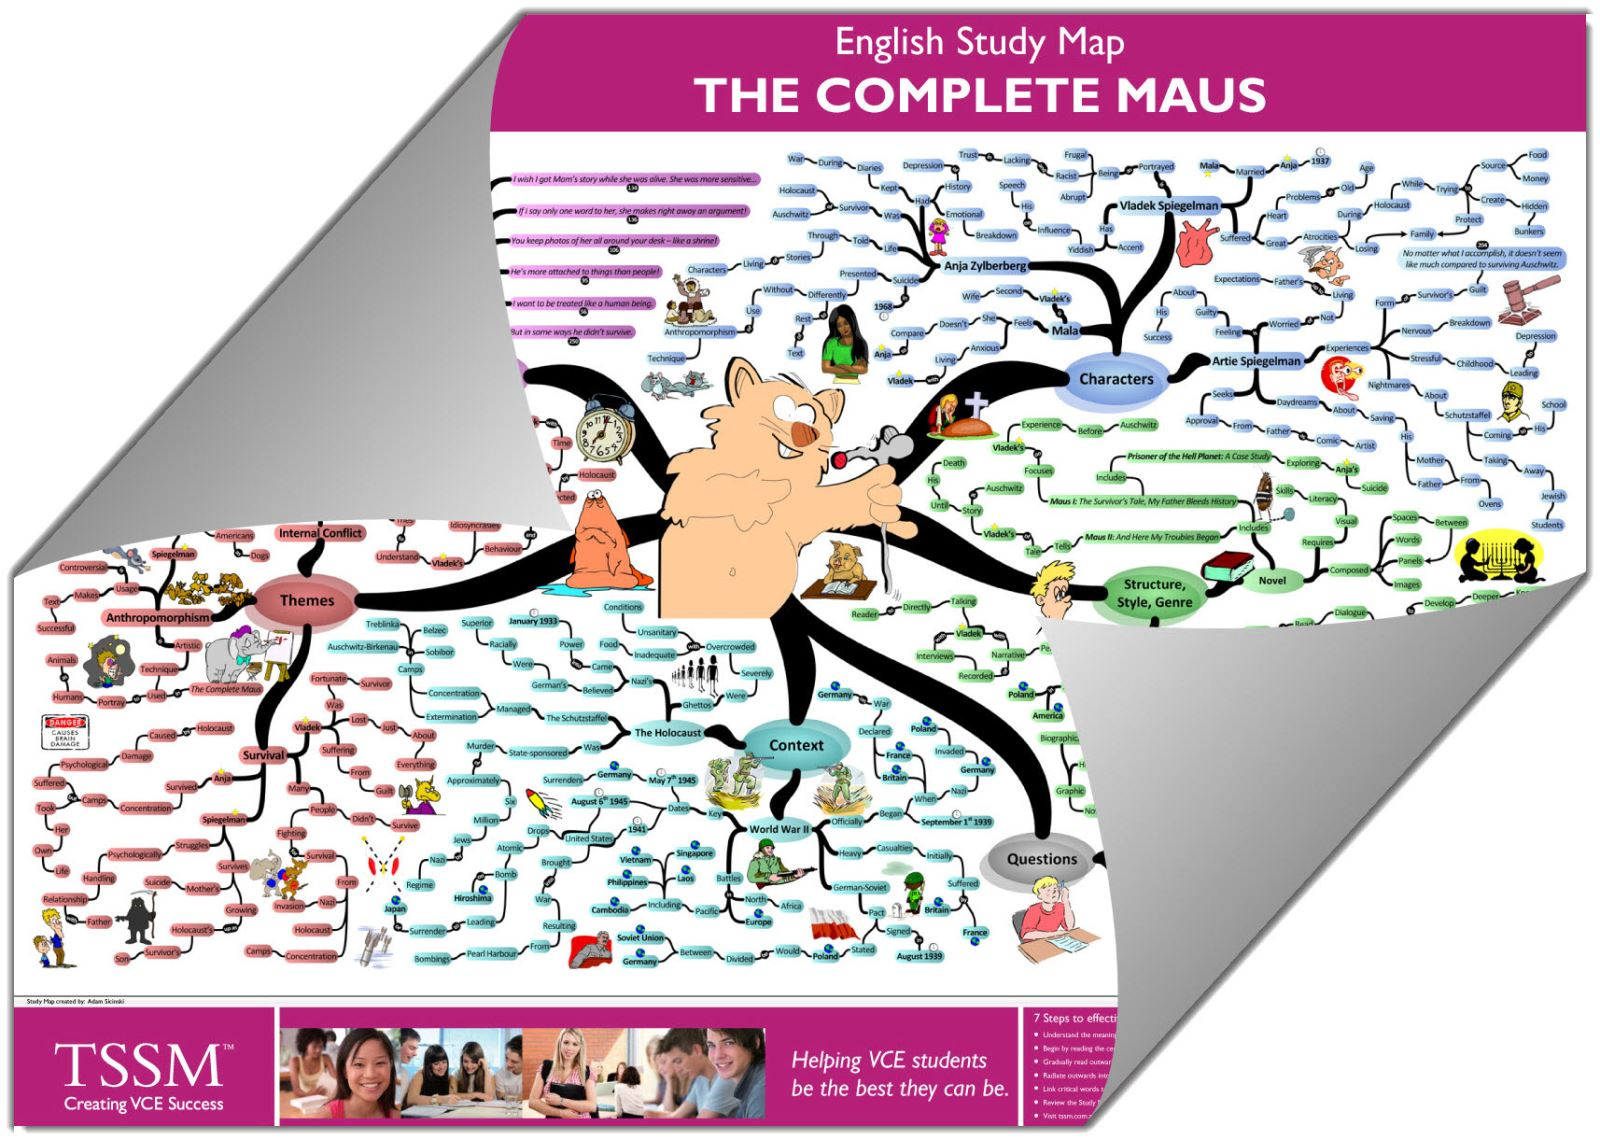 vce the complete maus study map an example of the study map is shown below